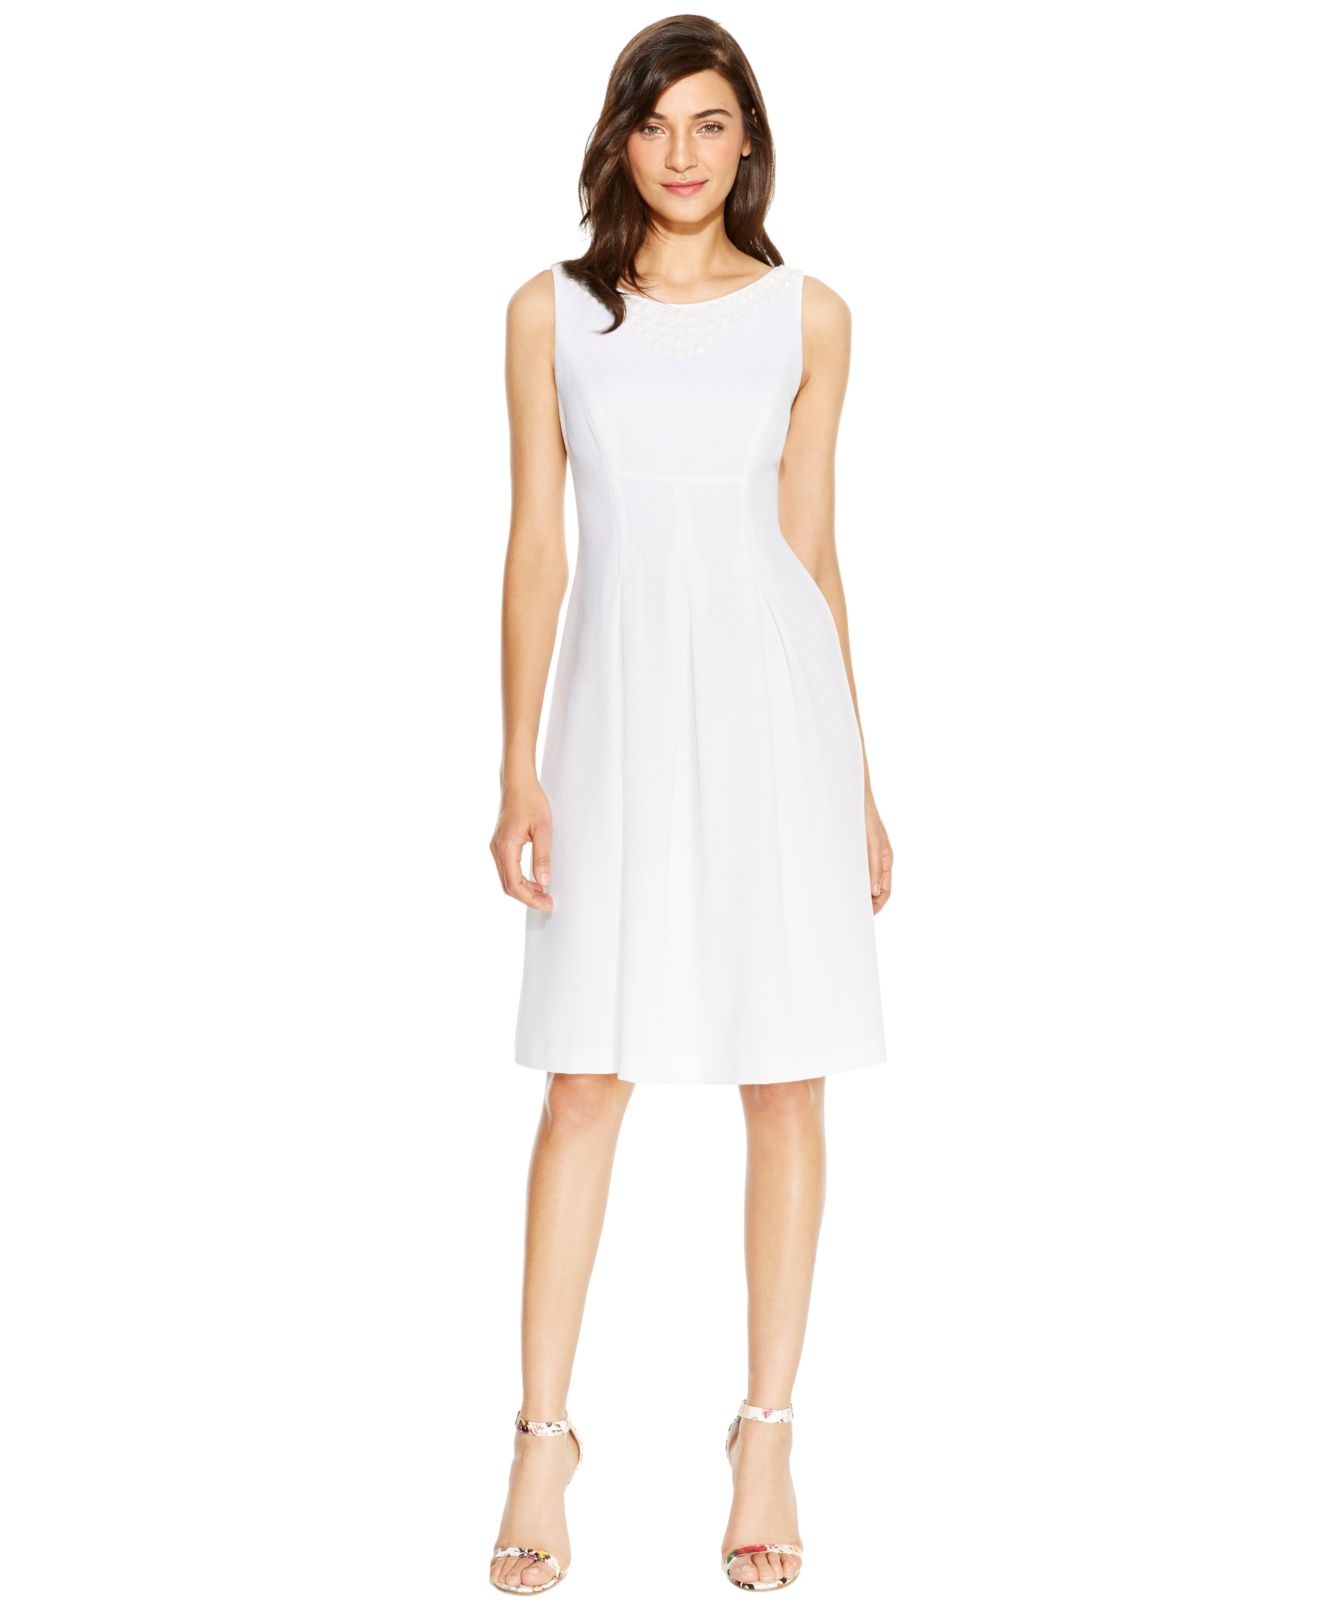 Nine West Dresses On Sale